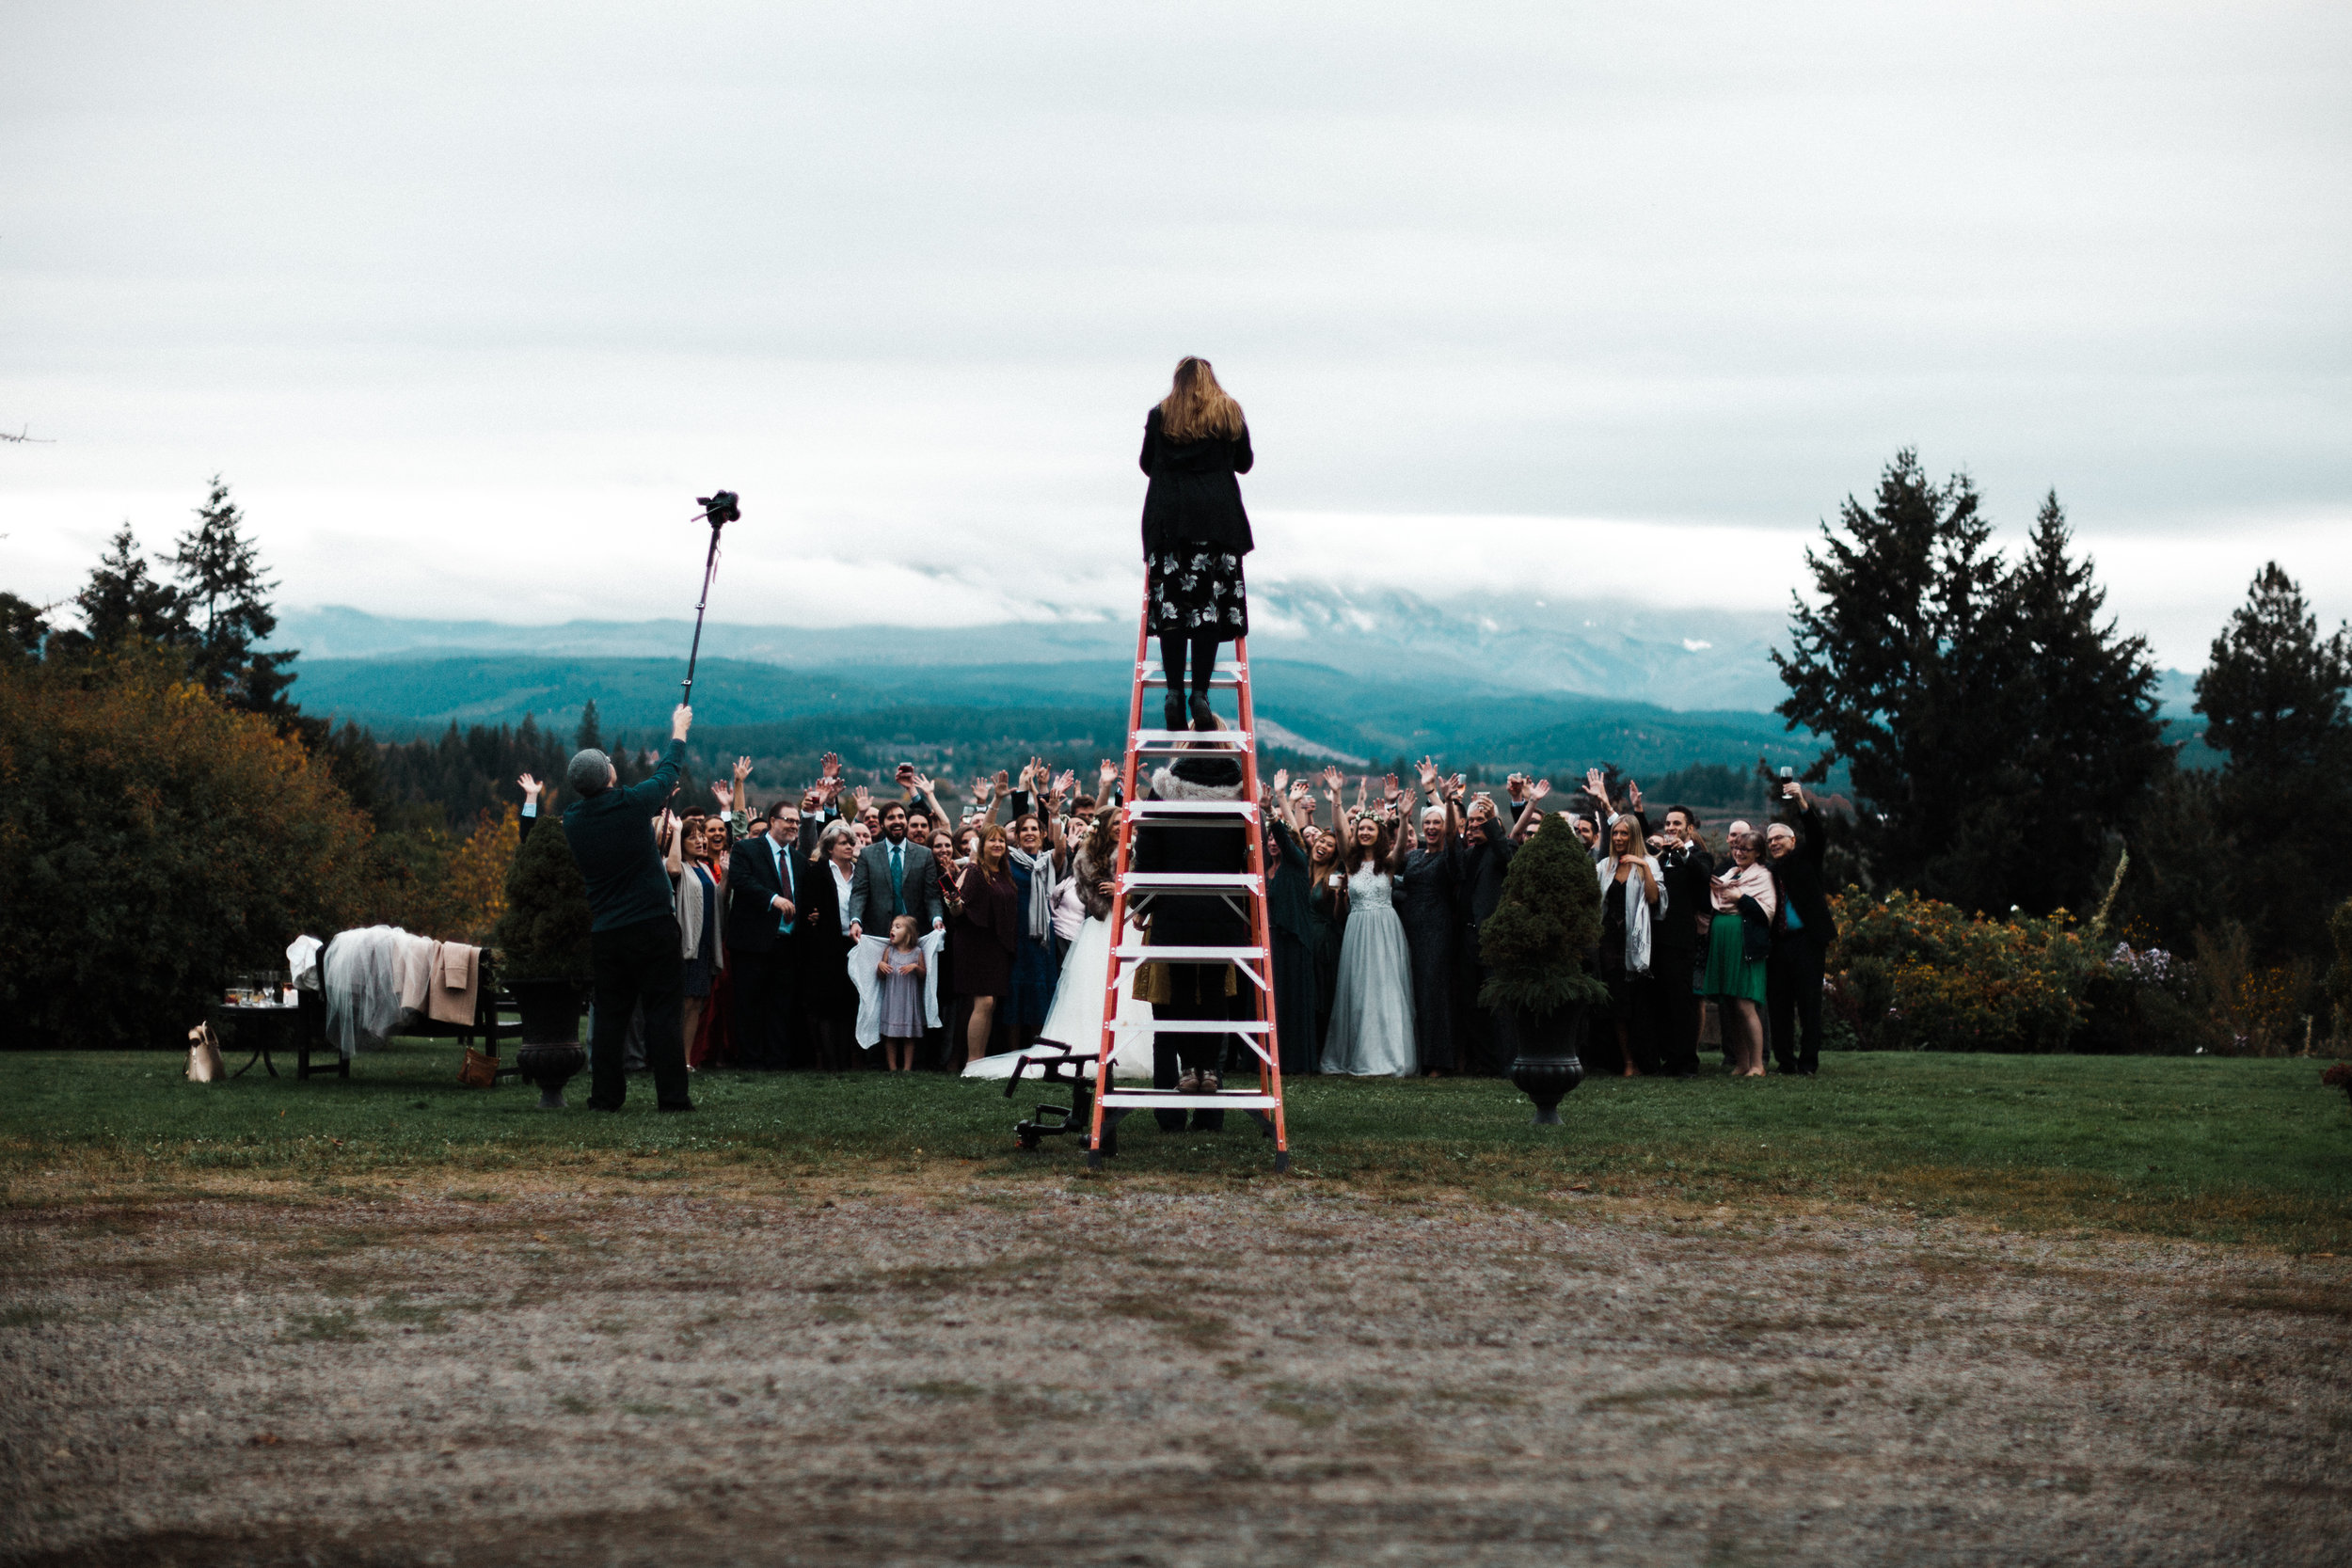 The photographer, (me!) on a ladder, shooting a large group photo at a wedding in Hood River, Oregon.